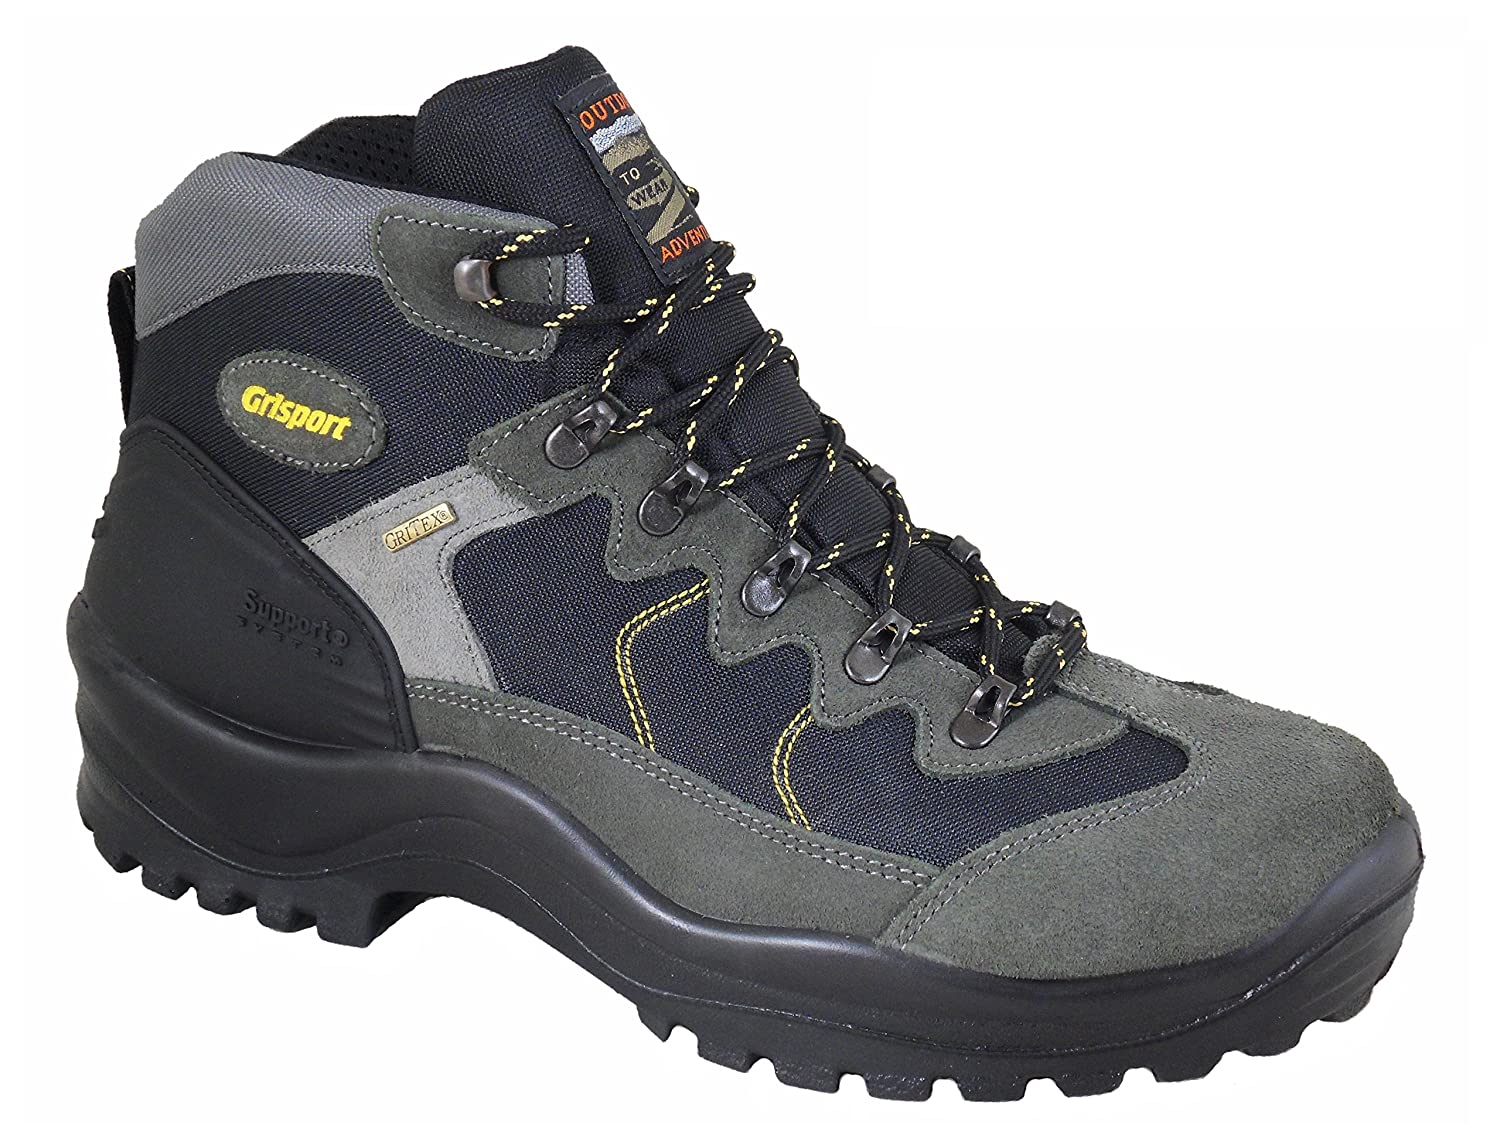 edb5740ee29 Grisport Mens Country Walker Ultra Lightweight Quality Walking Boots